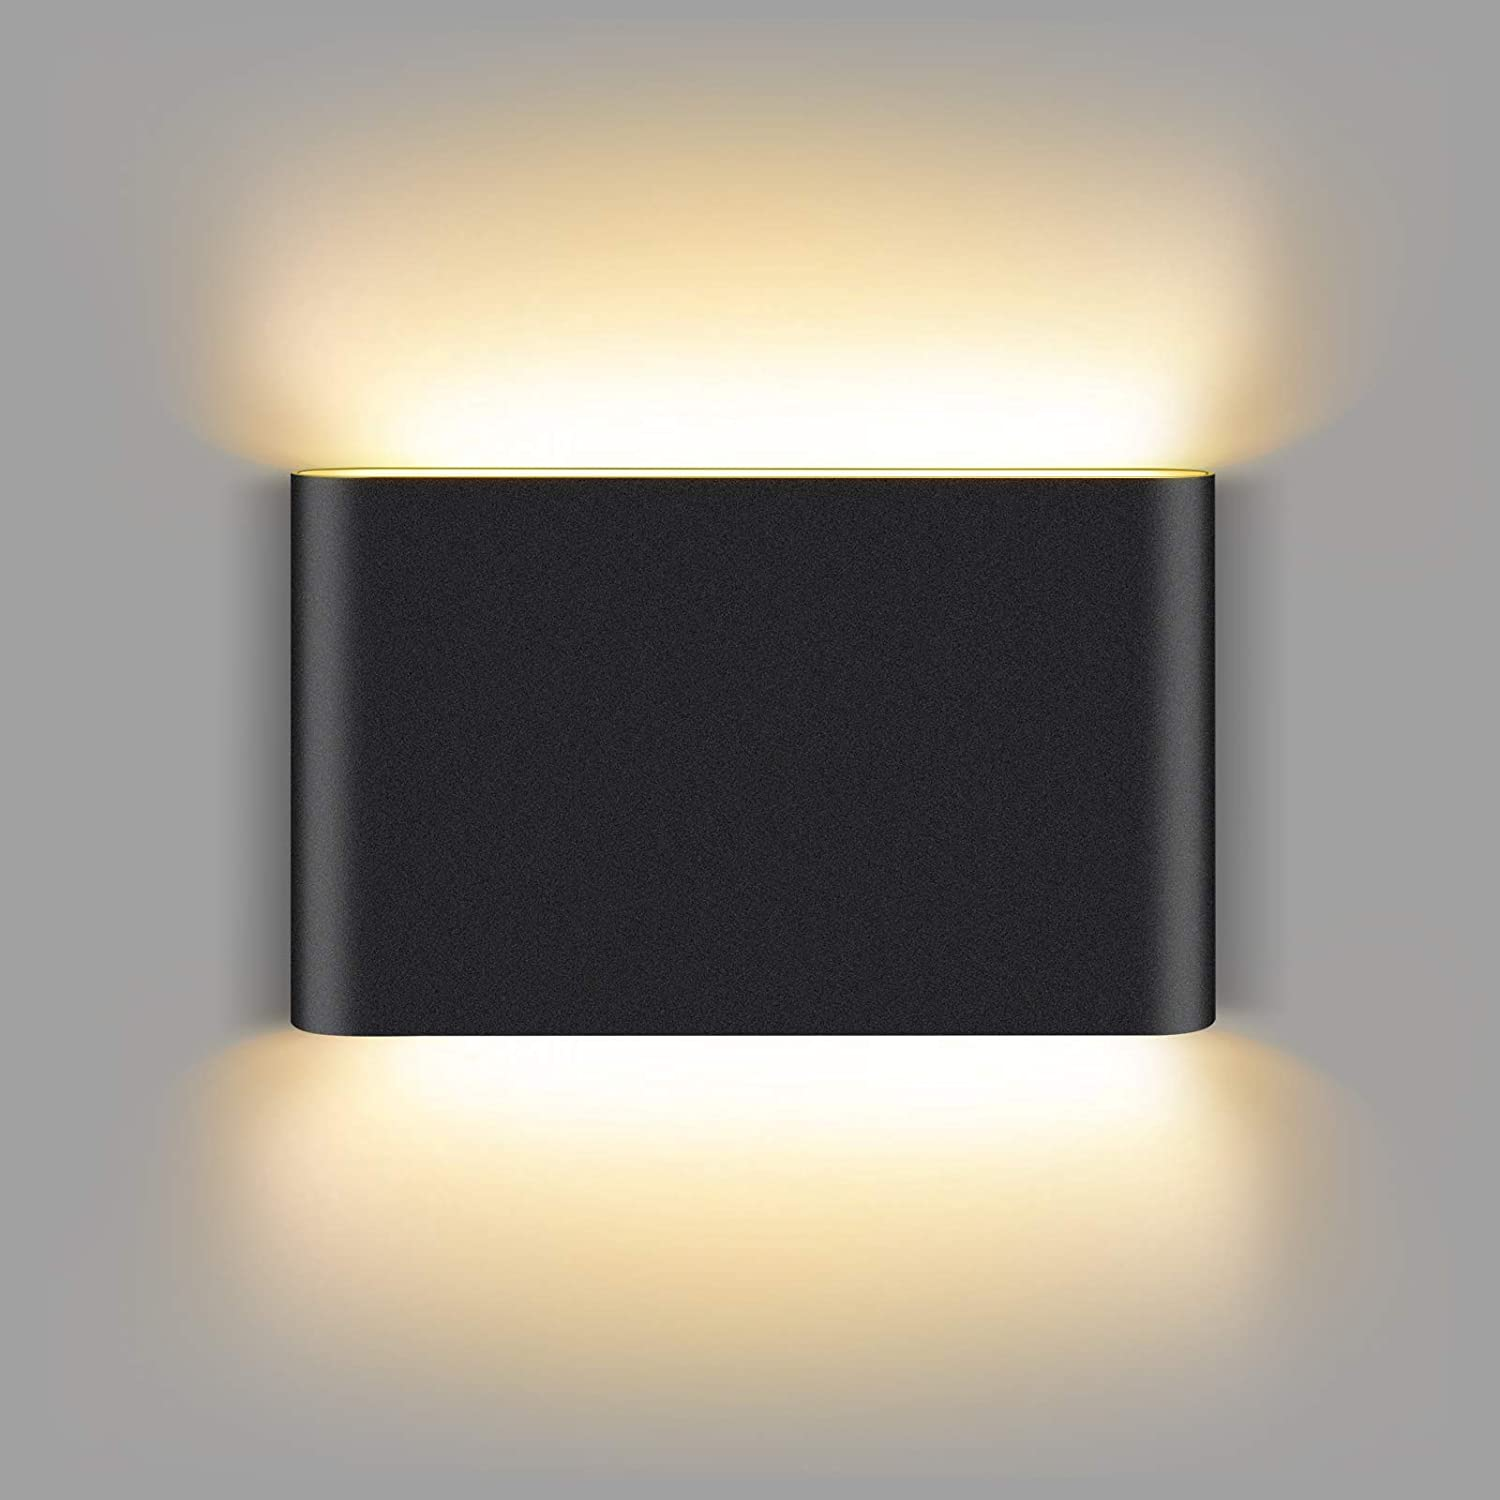 Unicozin Black Modern LED Wall Sconce 9W Warm White 3000K, 22 LED Chips 600LM, Up and Down Sconce Wall Lighting for Living Room Bedroom Hallway Home Room Decor